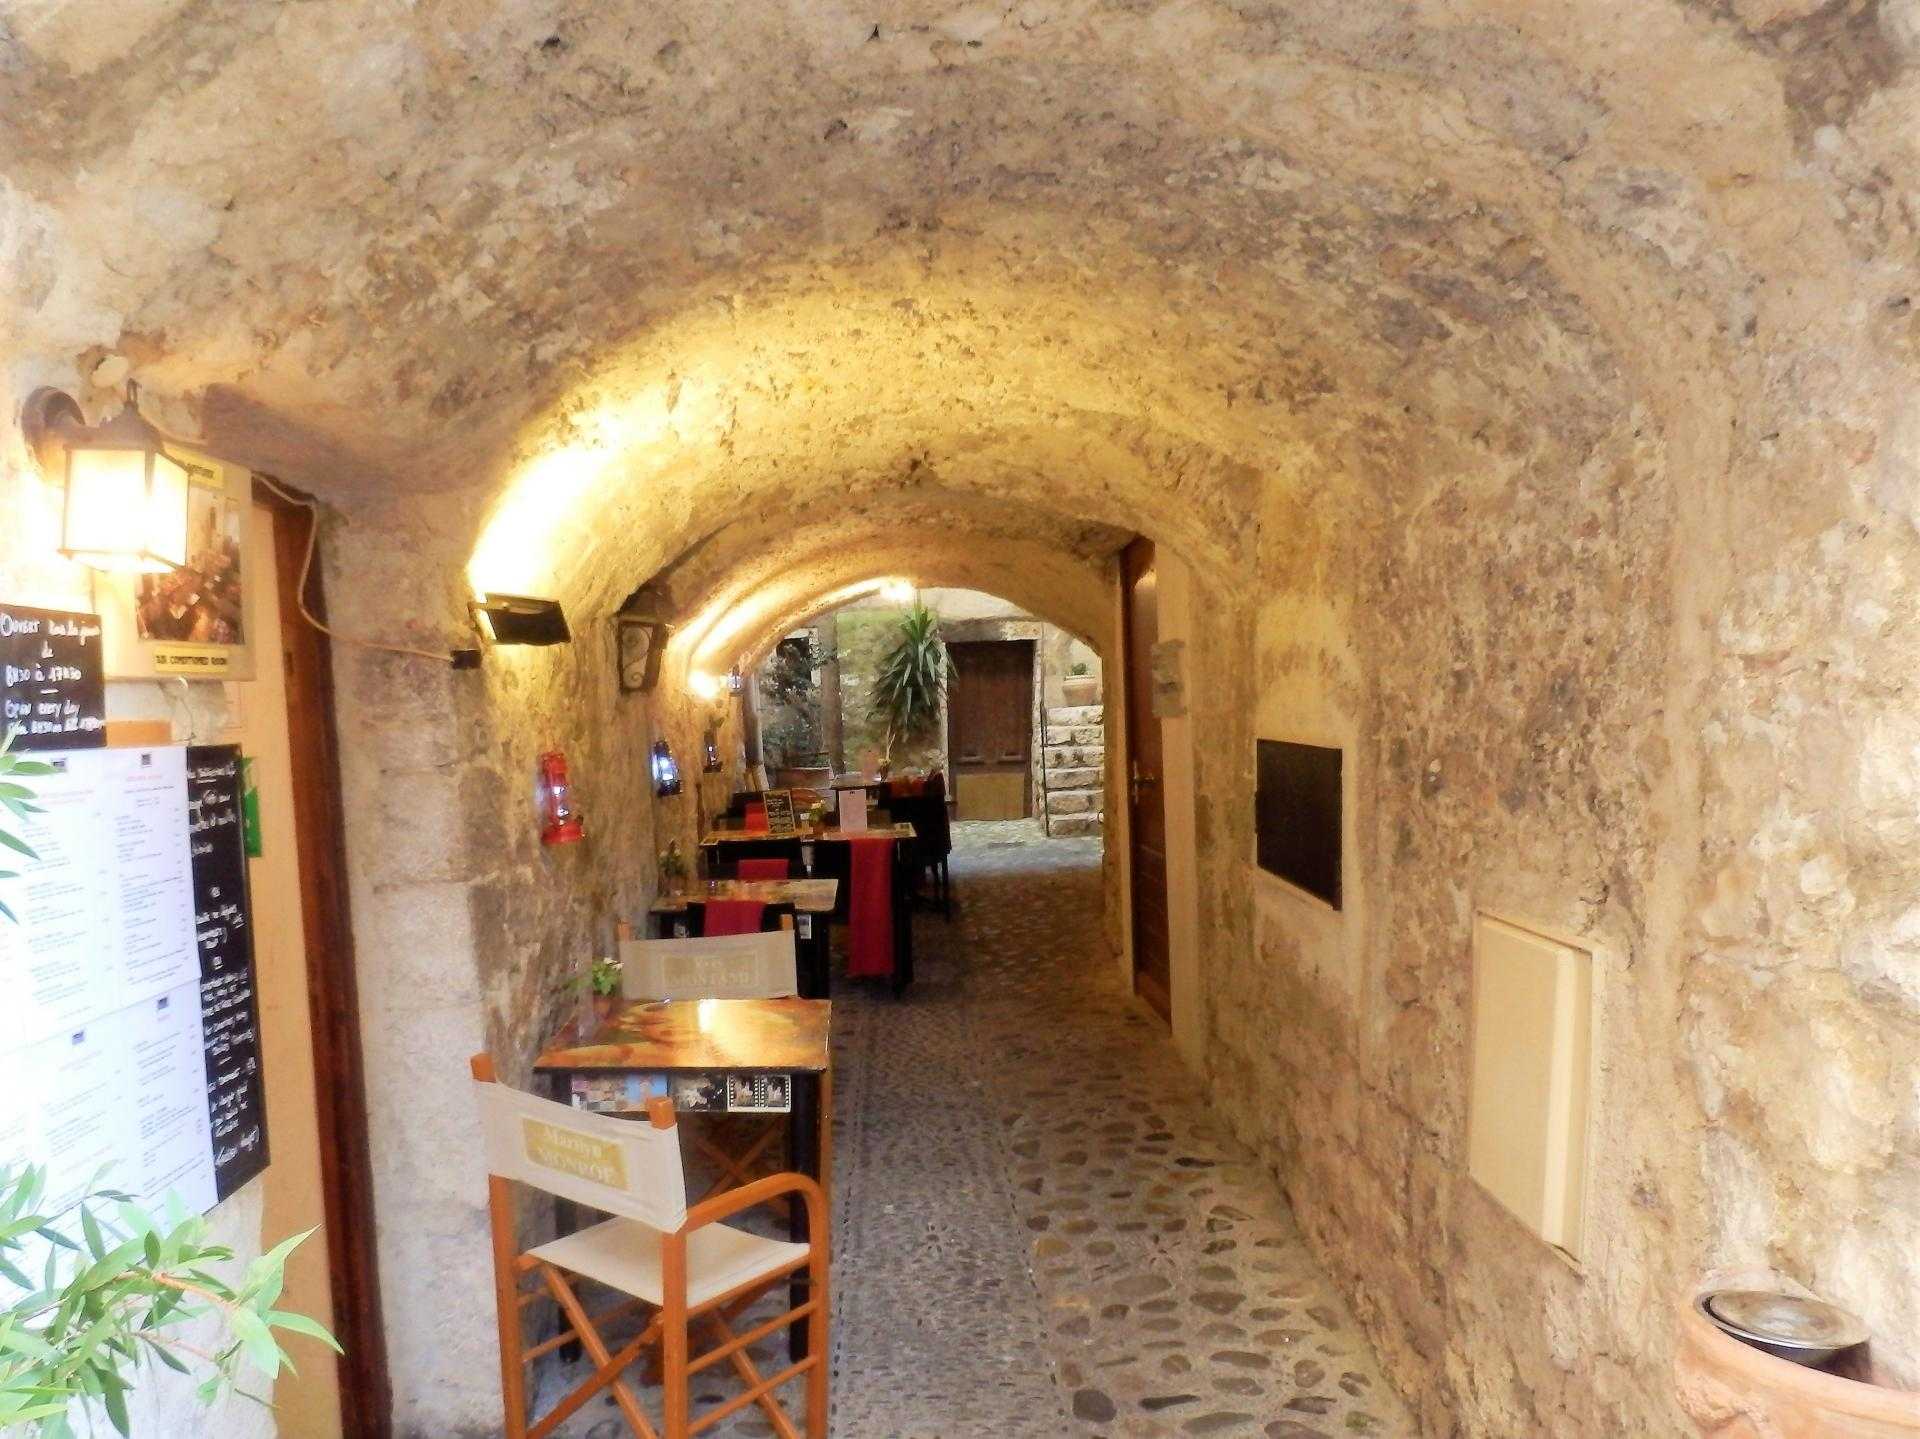 Visit Saint-Paul de Vence from SINE TEMPORE VENCE